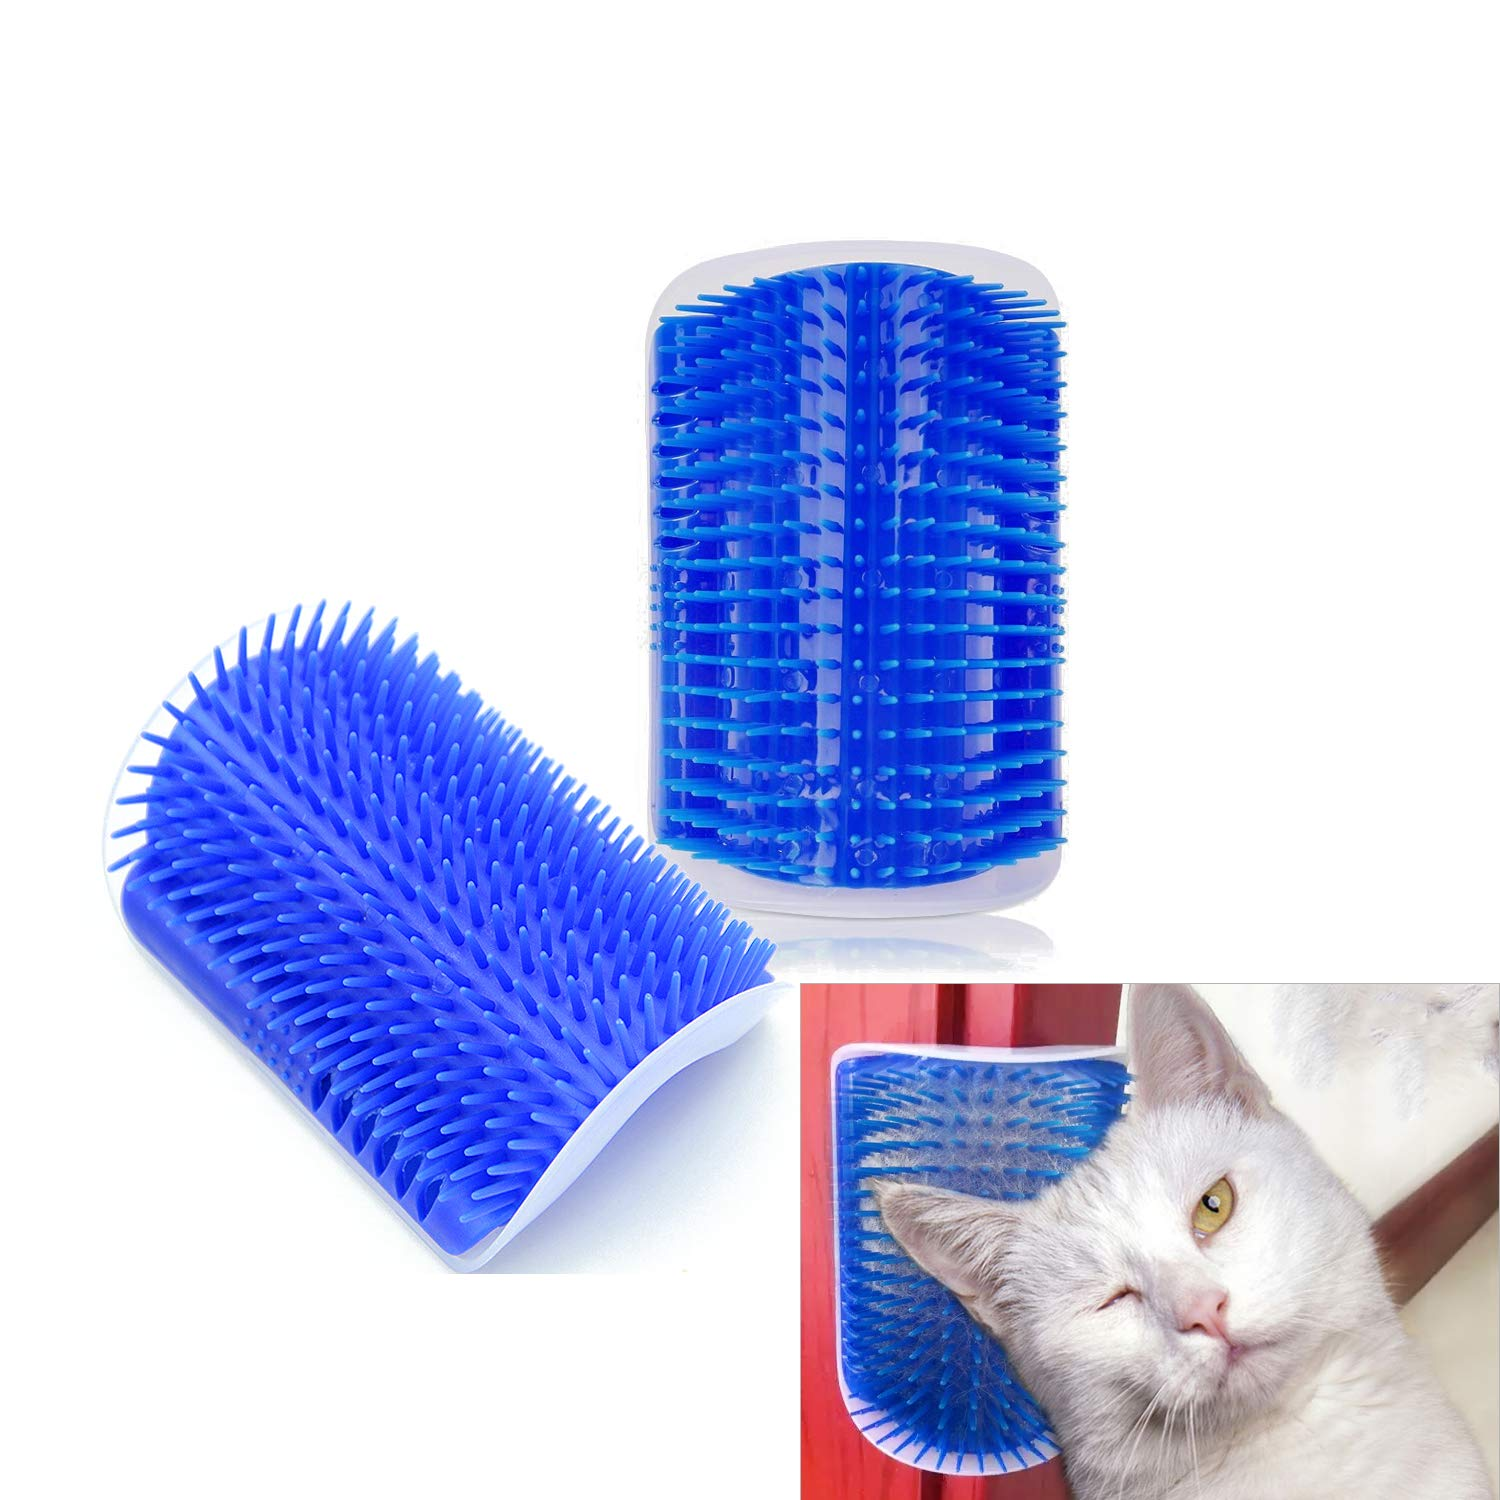 Hub's Gadget 2 Pack Cat Self Groomer, Wall Corner Massage Comb Grooming Brush with Catnip Pouch Best Cat Massage Combs